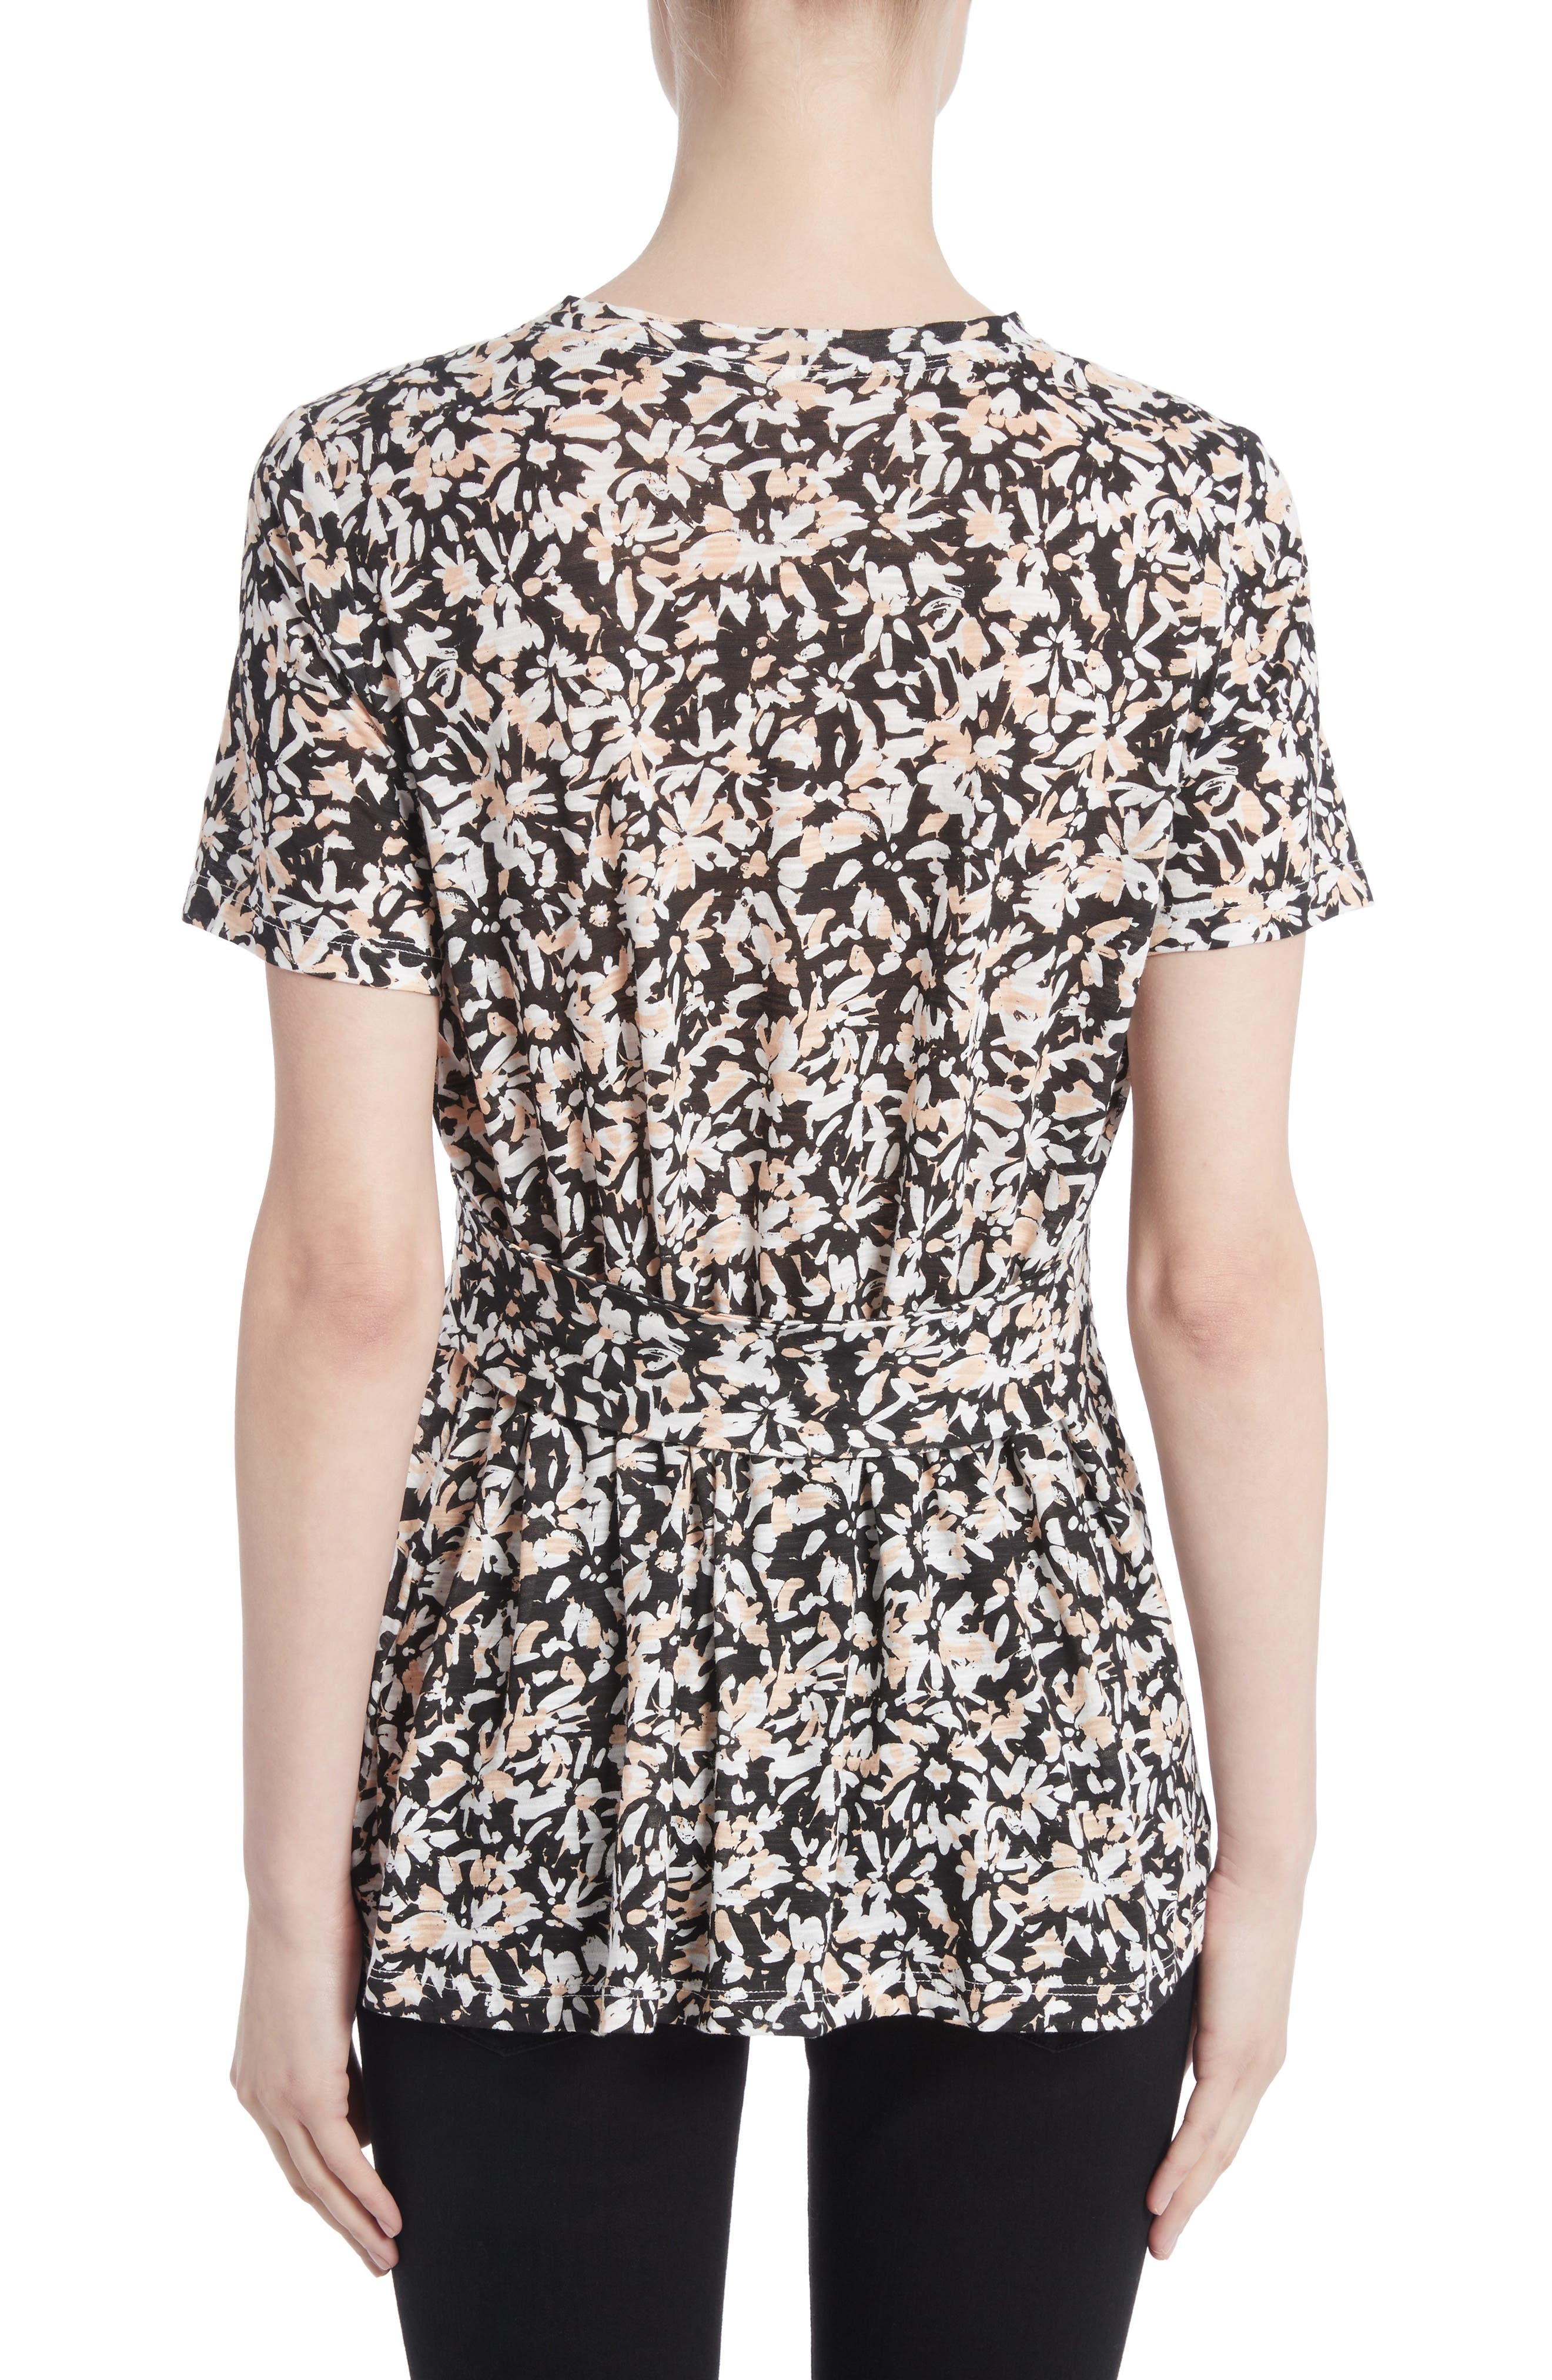 Band Detail Print Tissue Jersey Tee,                             Alternate thumbnail 2, color,                             Nude/ Black Painted Floral